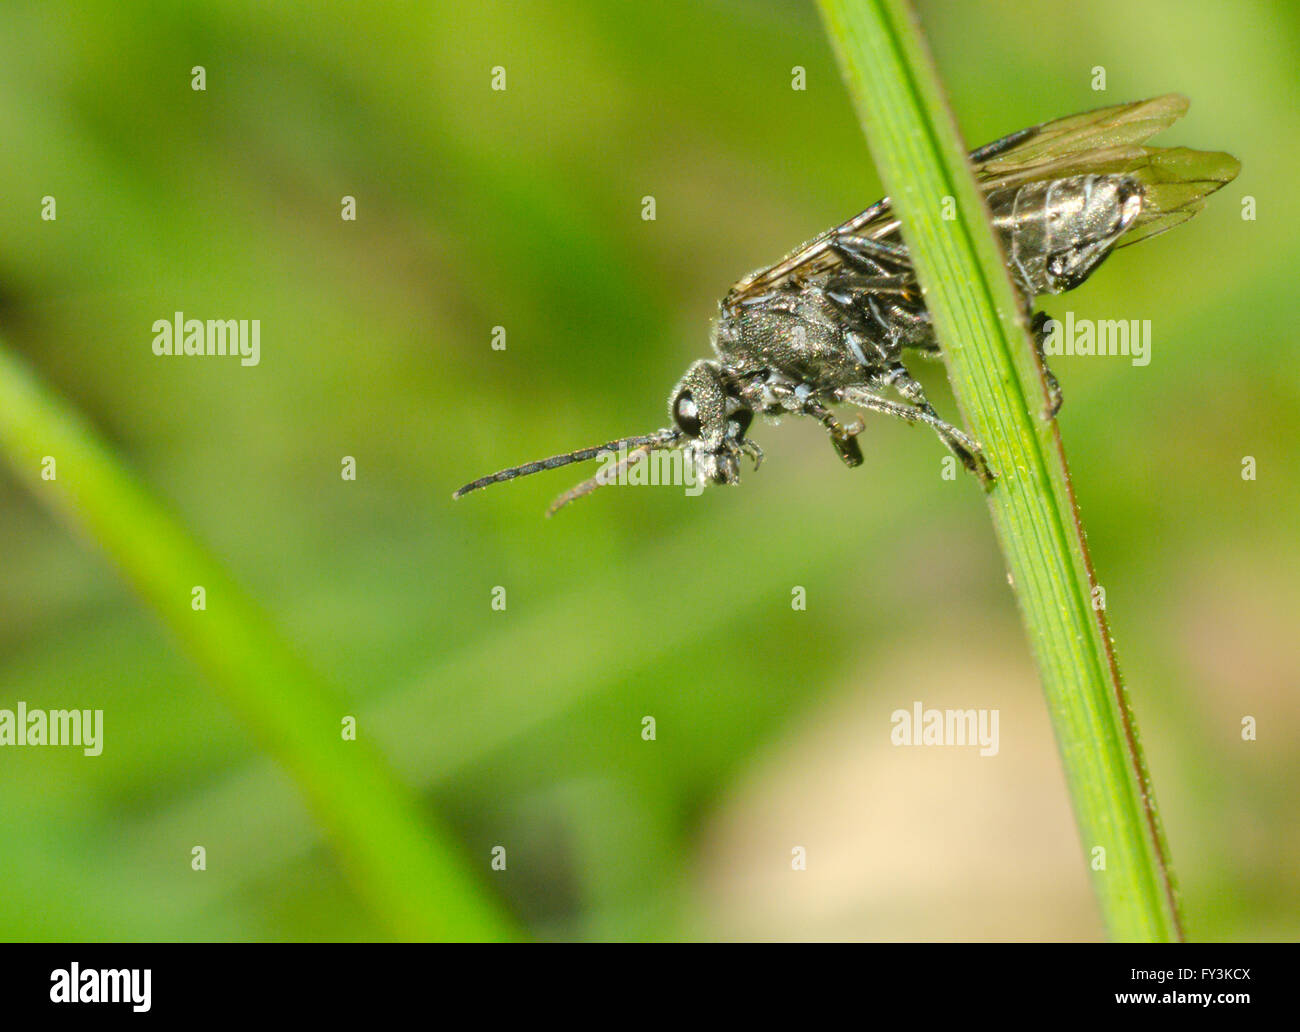 Fly sitting on grass Stock Photo